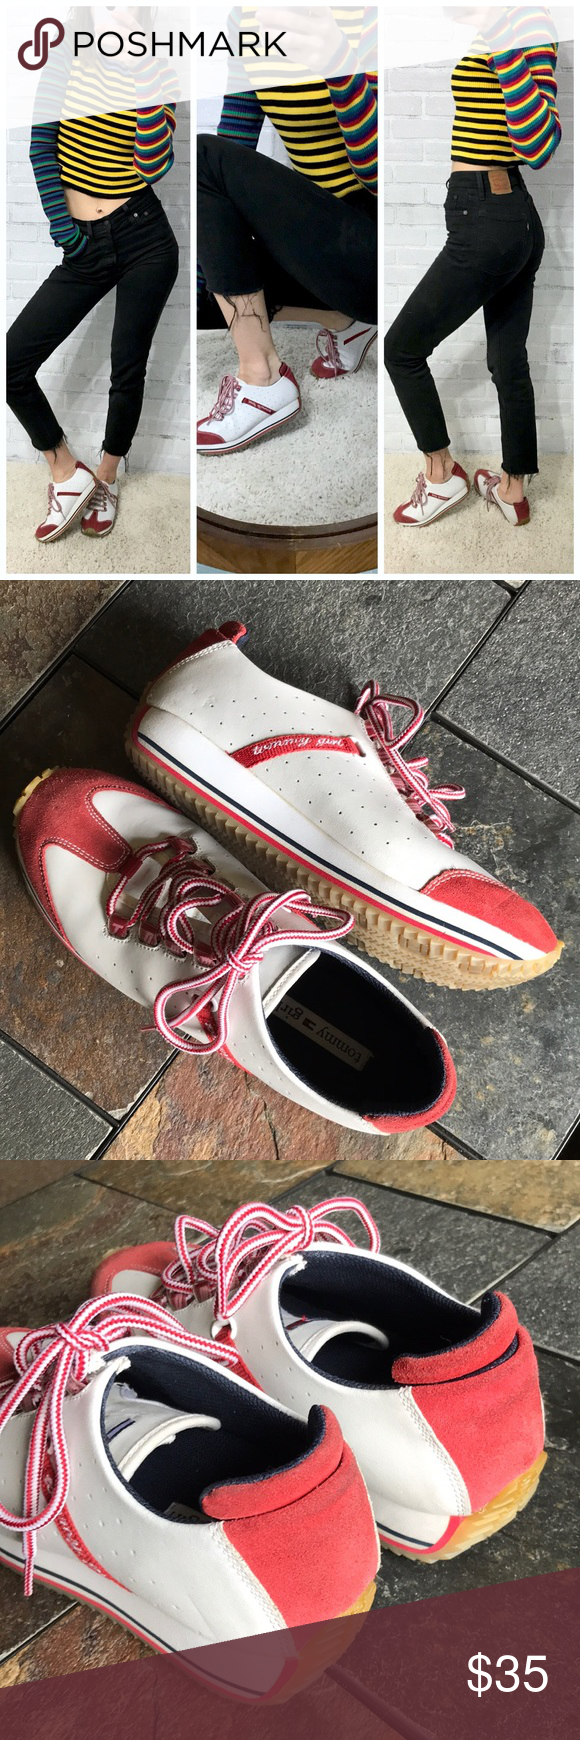 """1abe75eccd27ab Tommy Hilfiger 90s Y2K chunky sneakers Good vintage condition 1.5"""" platform  adds height Women s 8"""